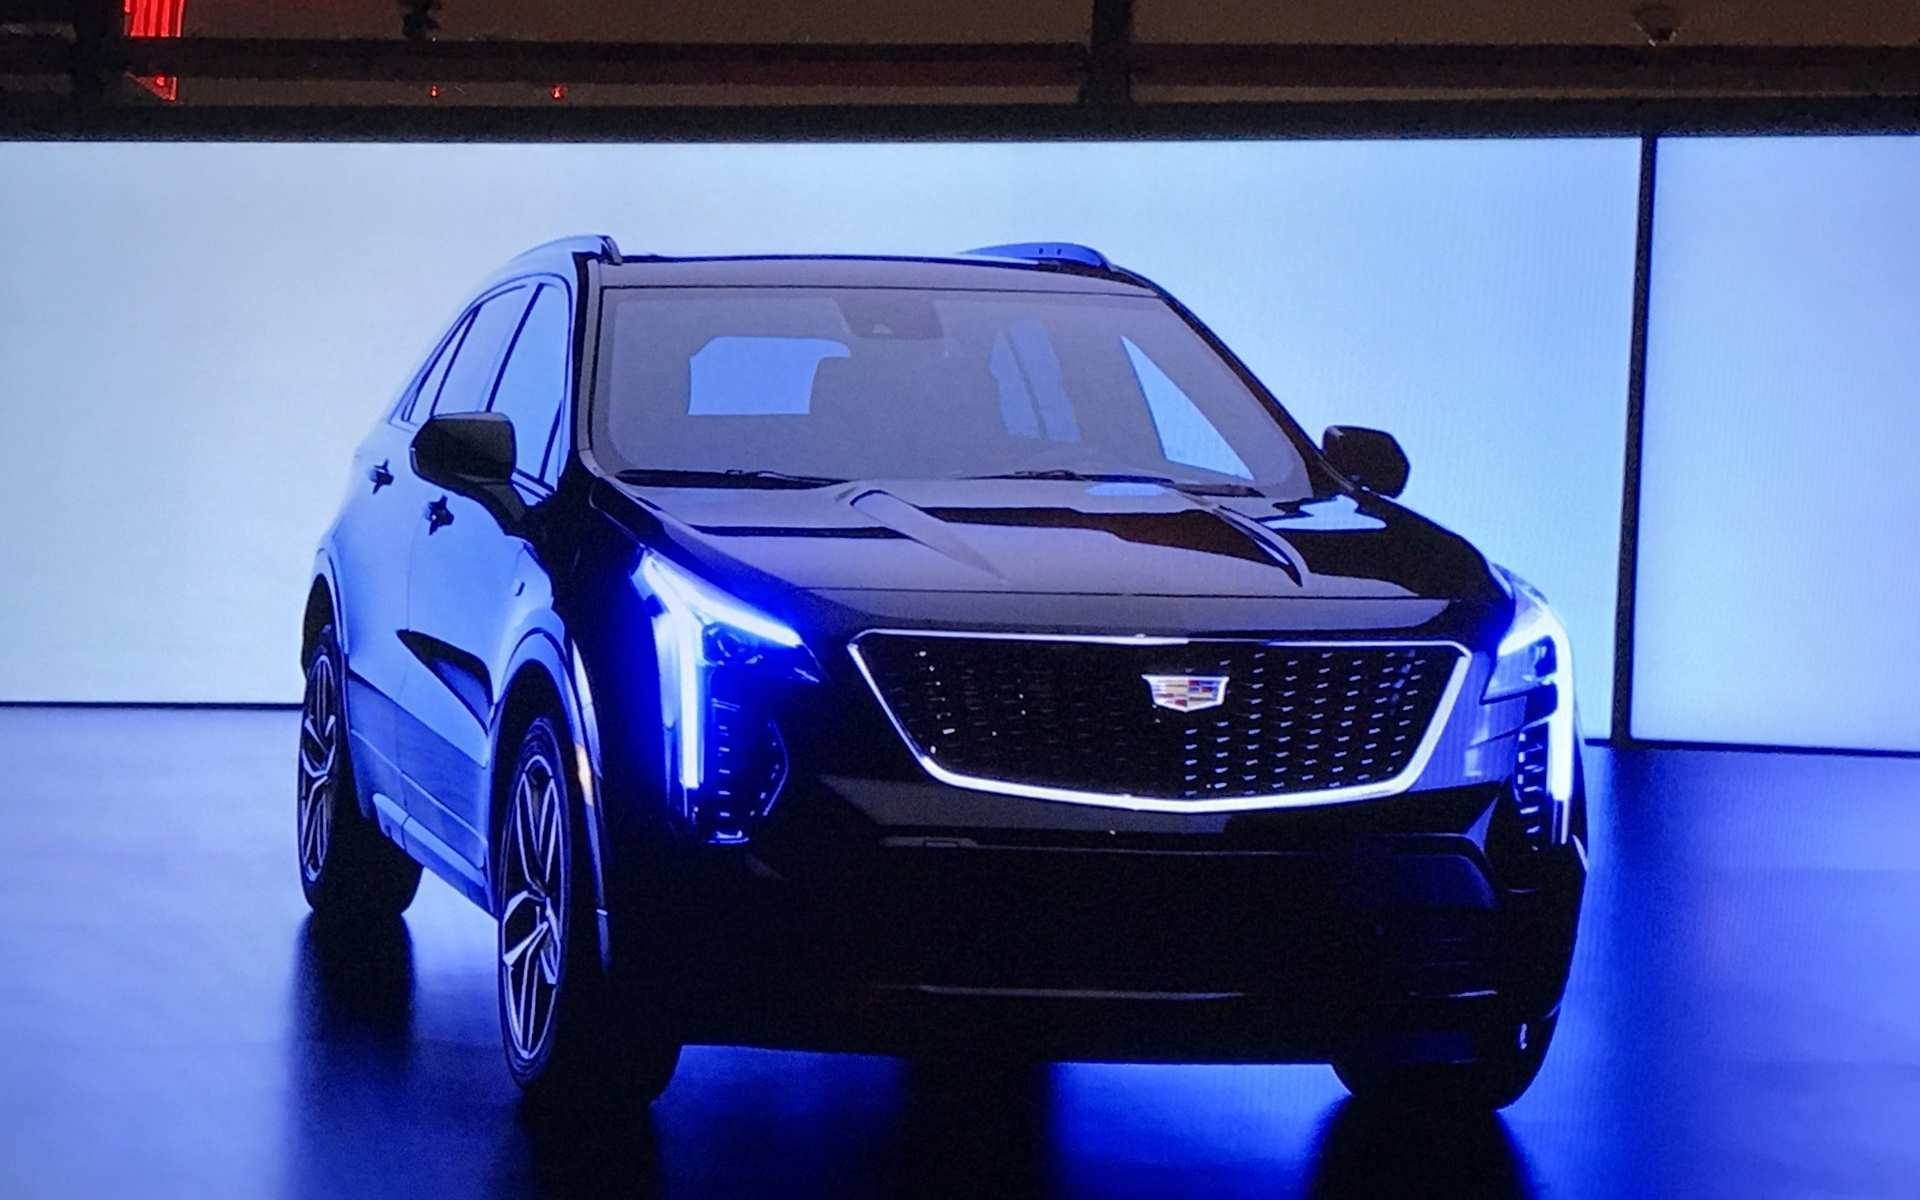 62 All New New Cadillac Xt4 2019 Images Engine Price with New Cadillac Xt4 2019 Images Engine